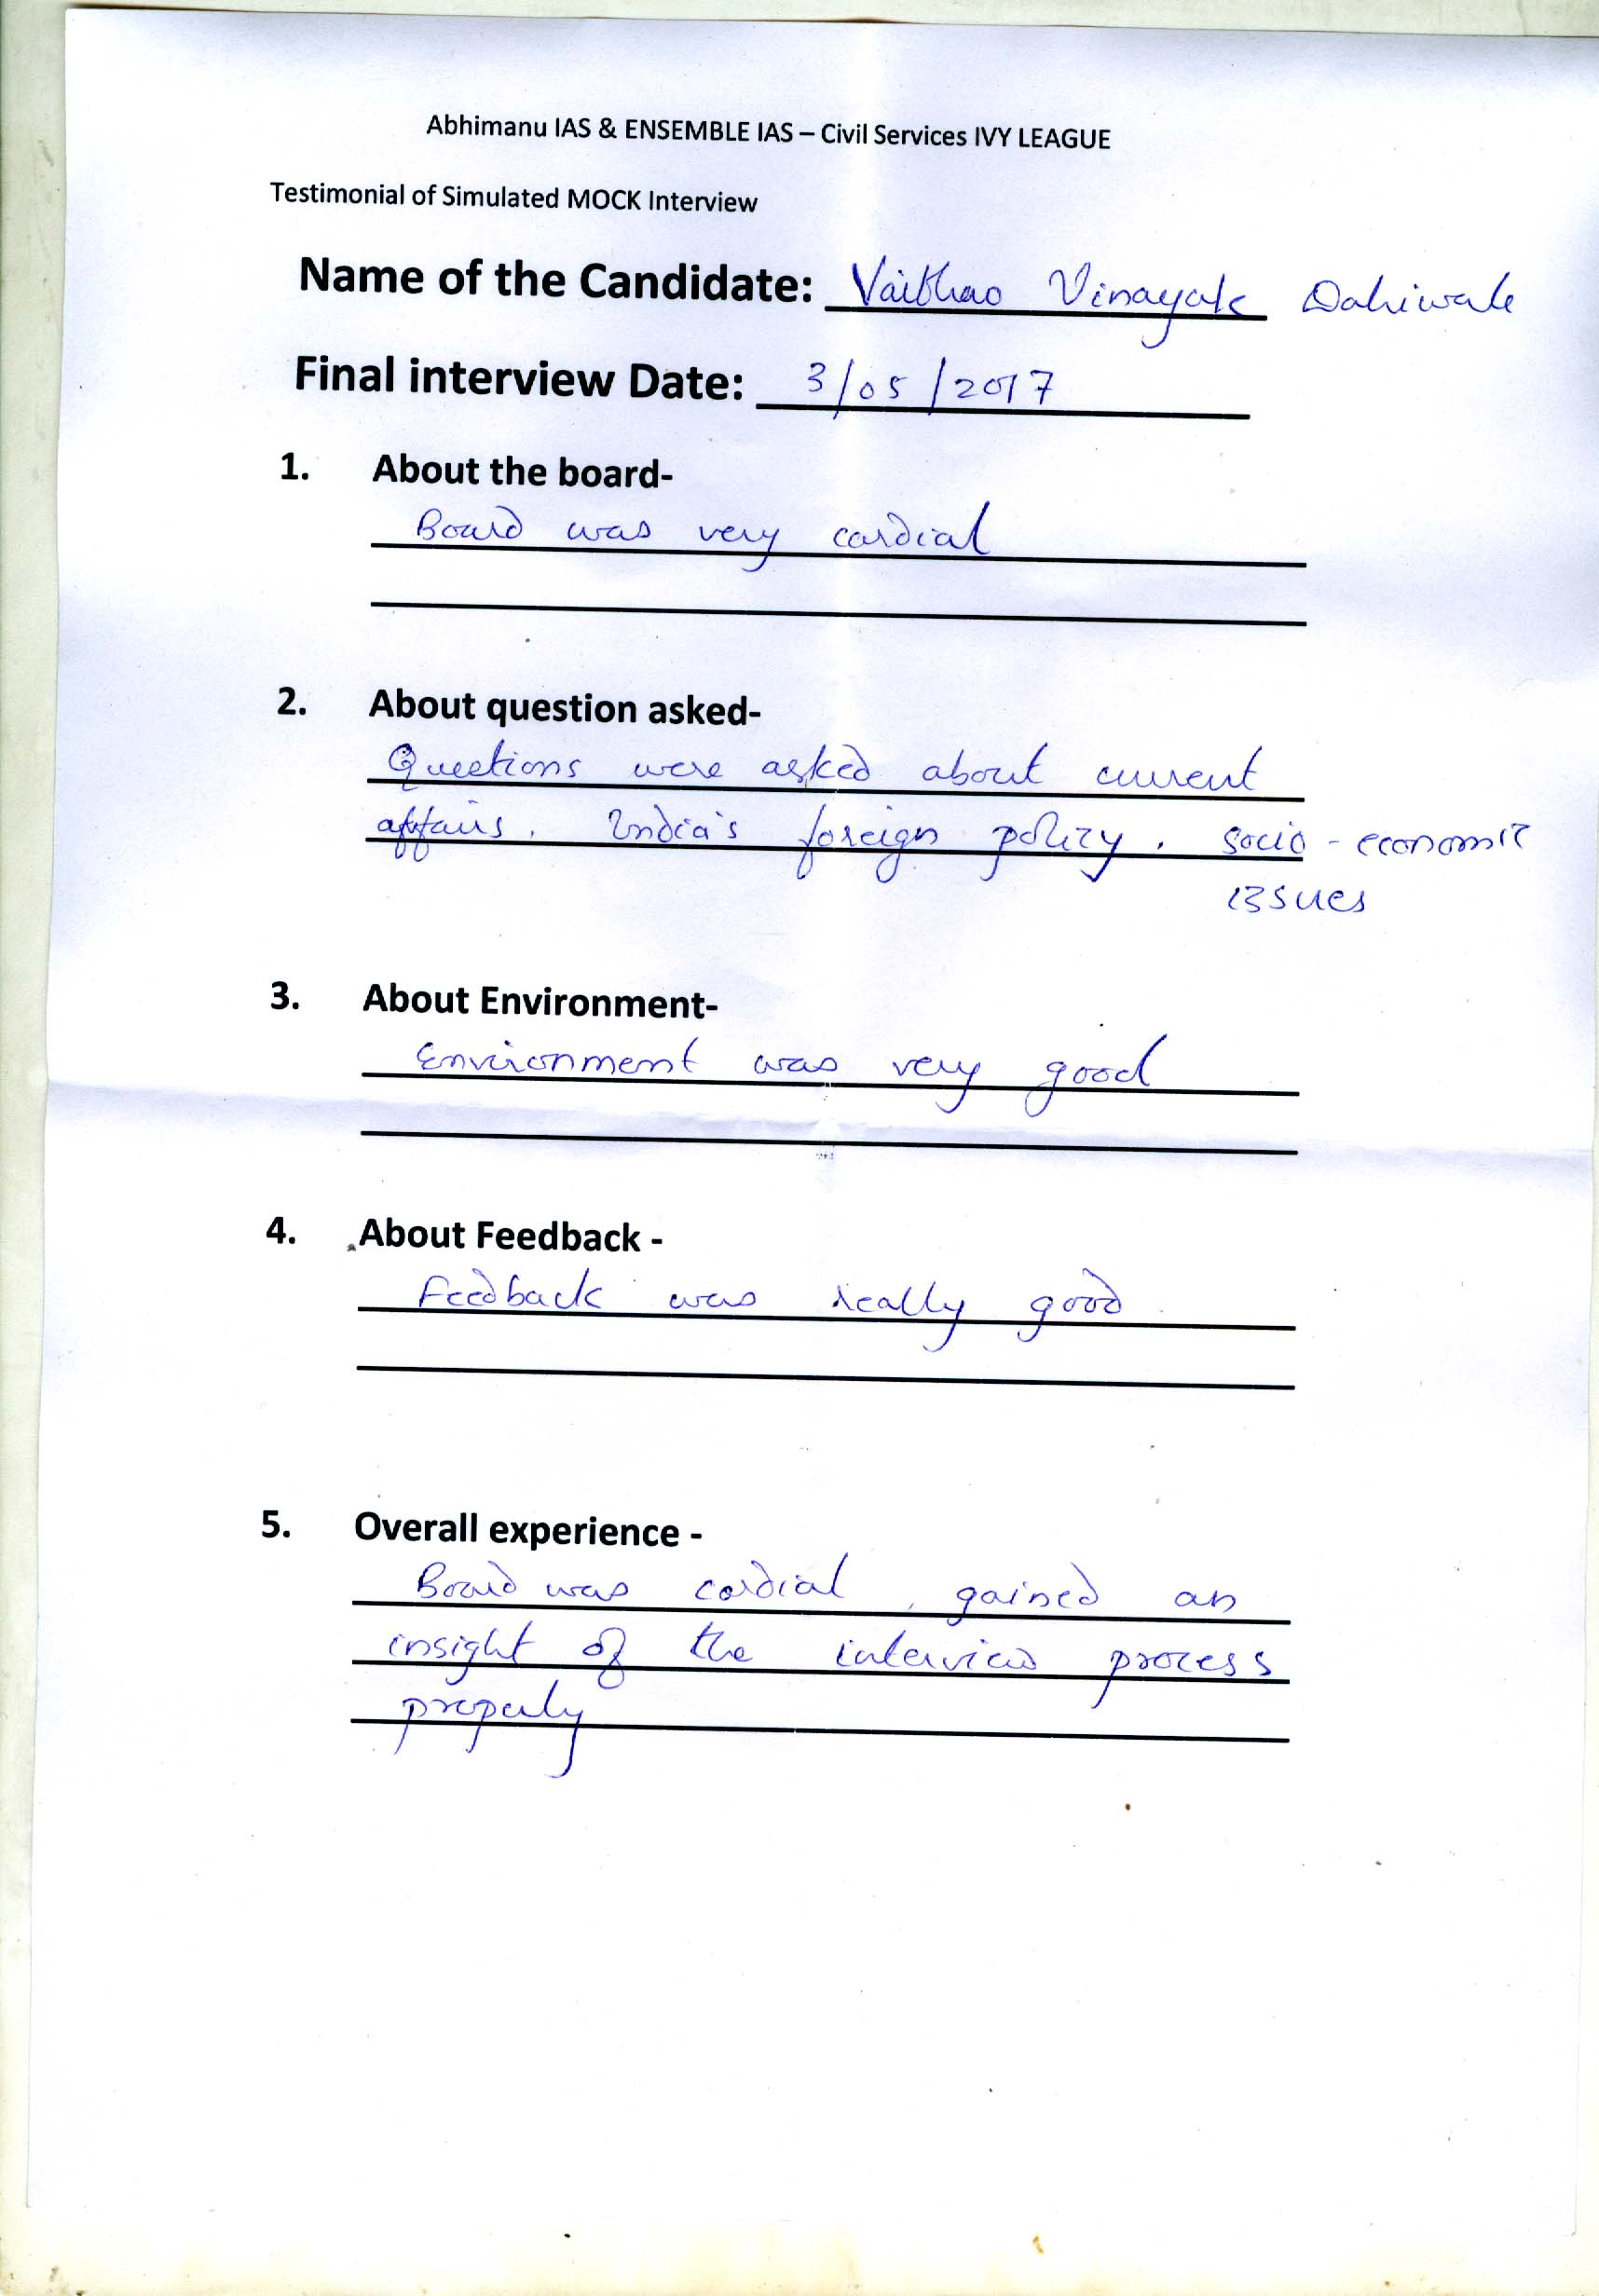 Interview Testimonial By- Dahiwale Vaibhavo